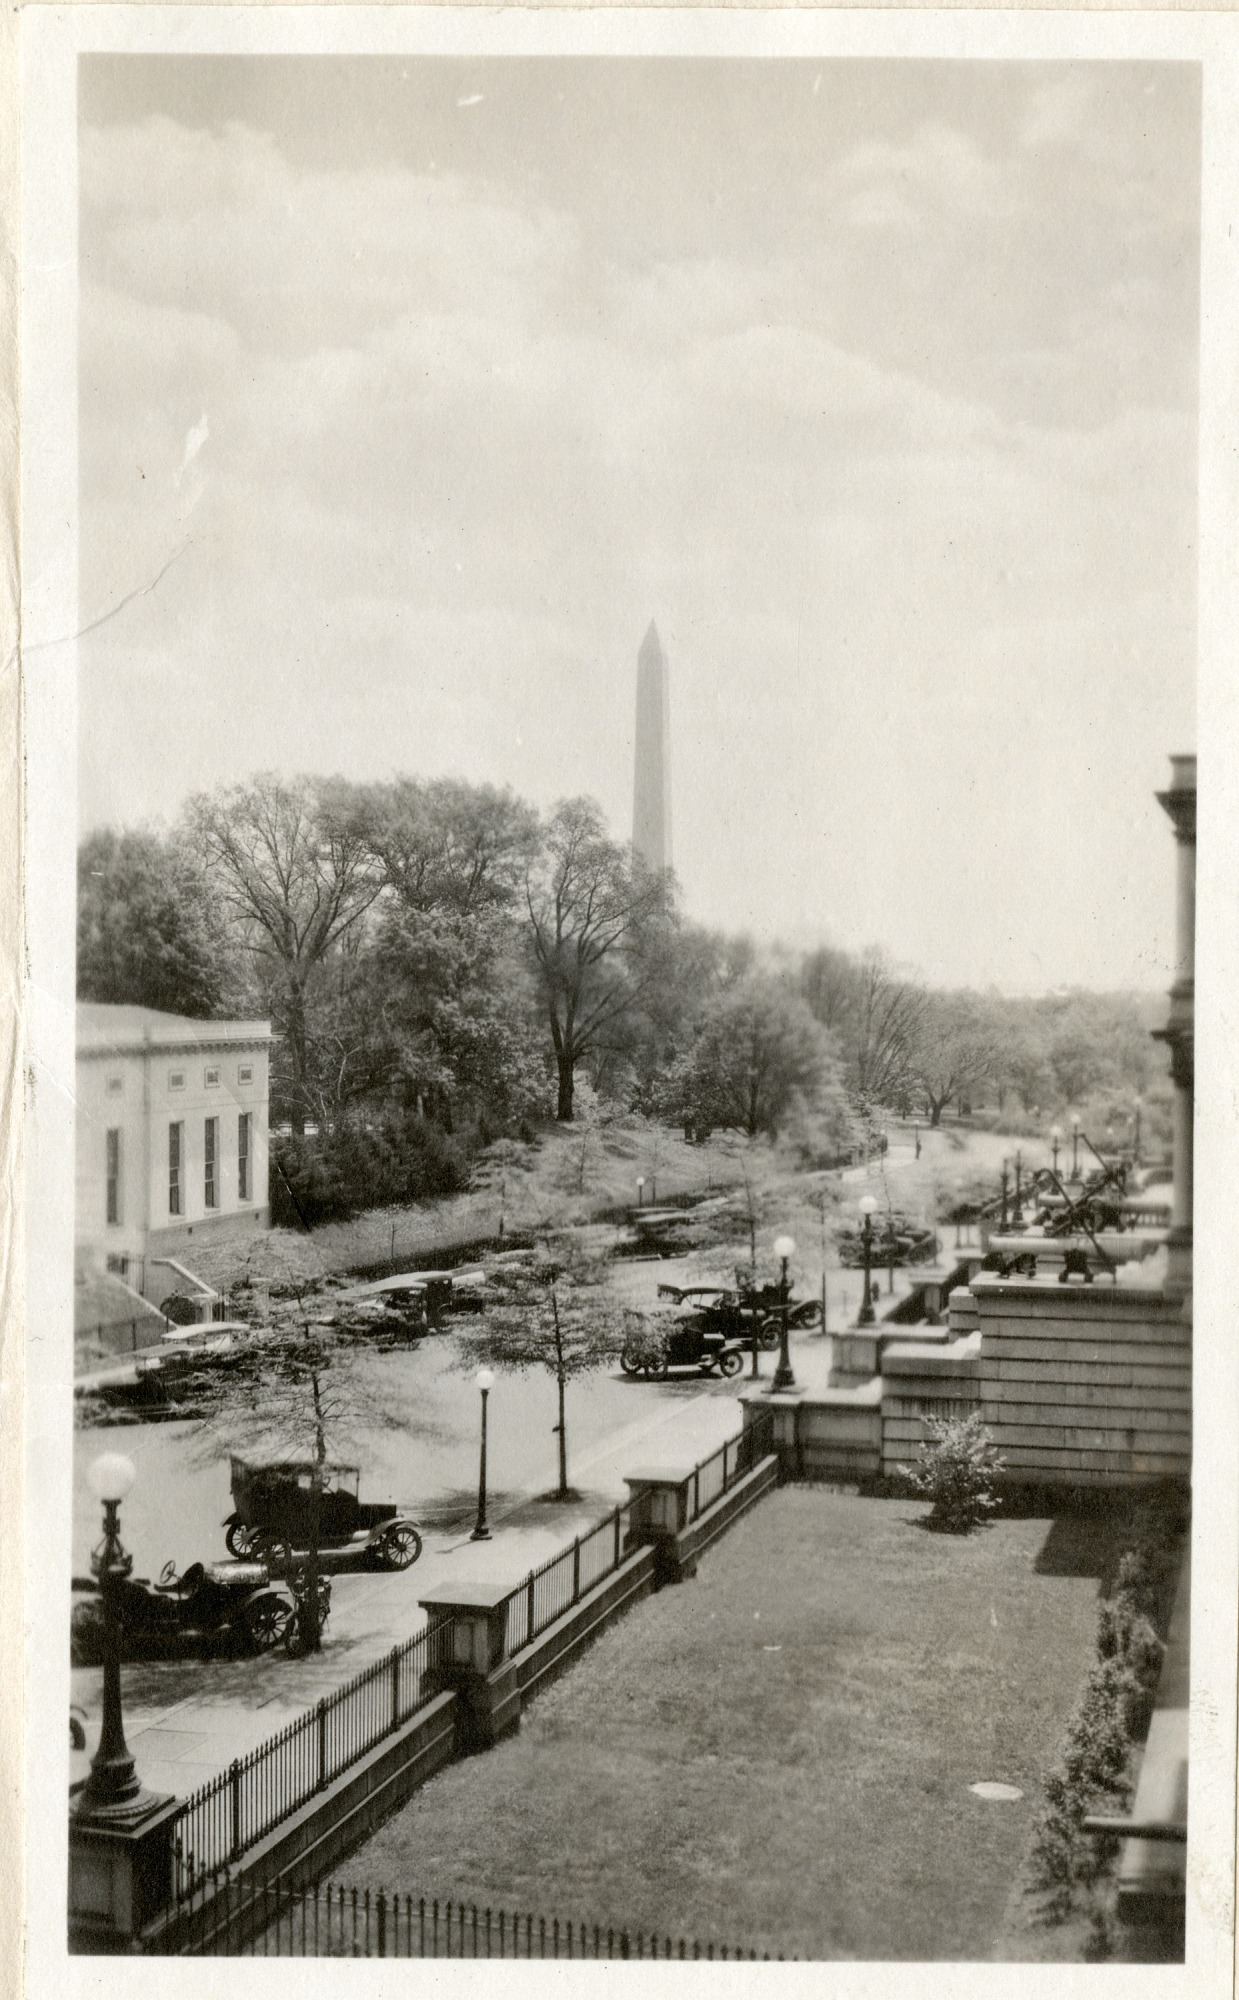 Street view with Washington Monument in the background